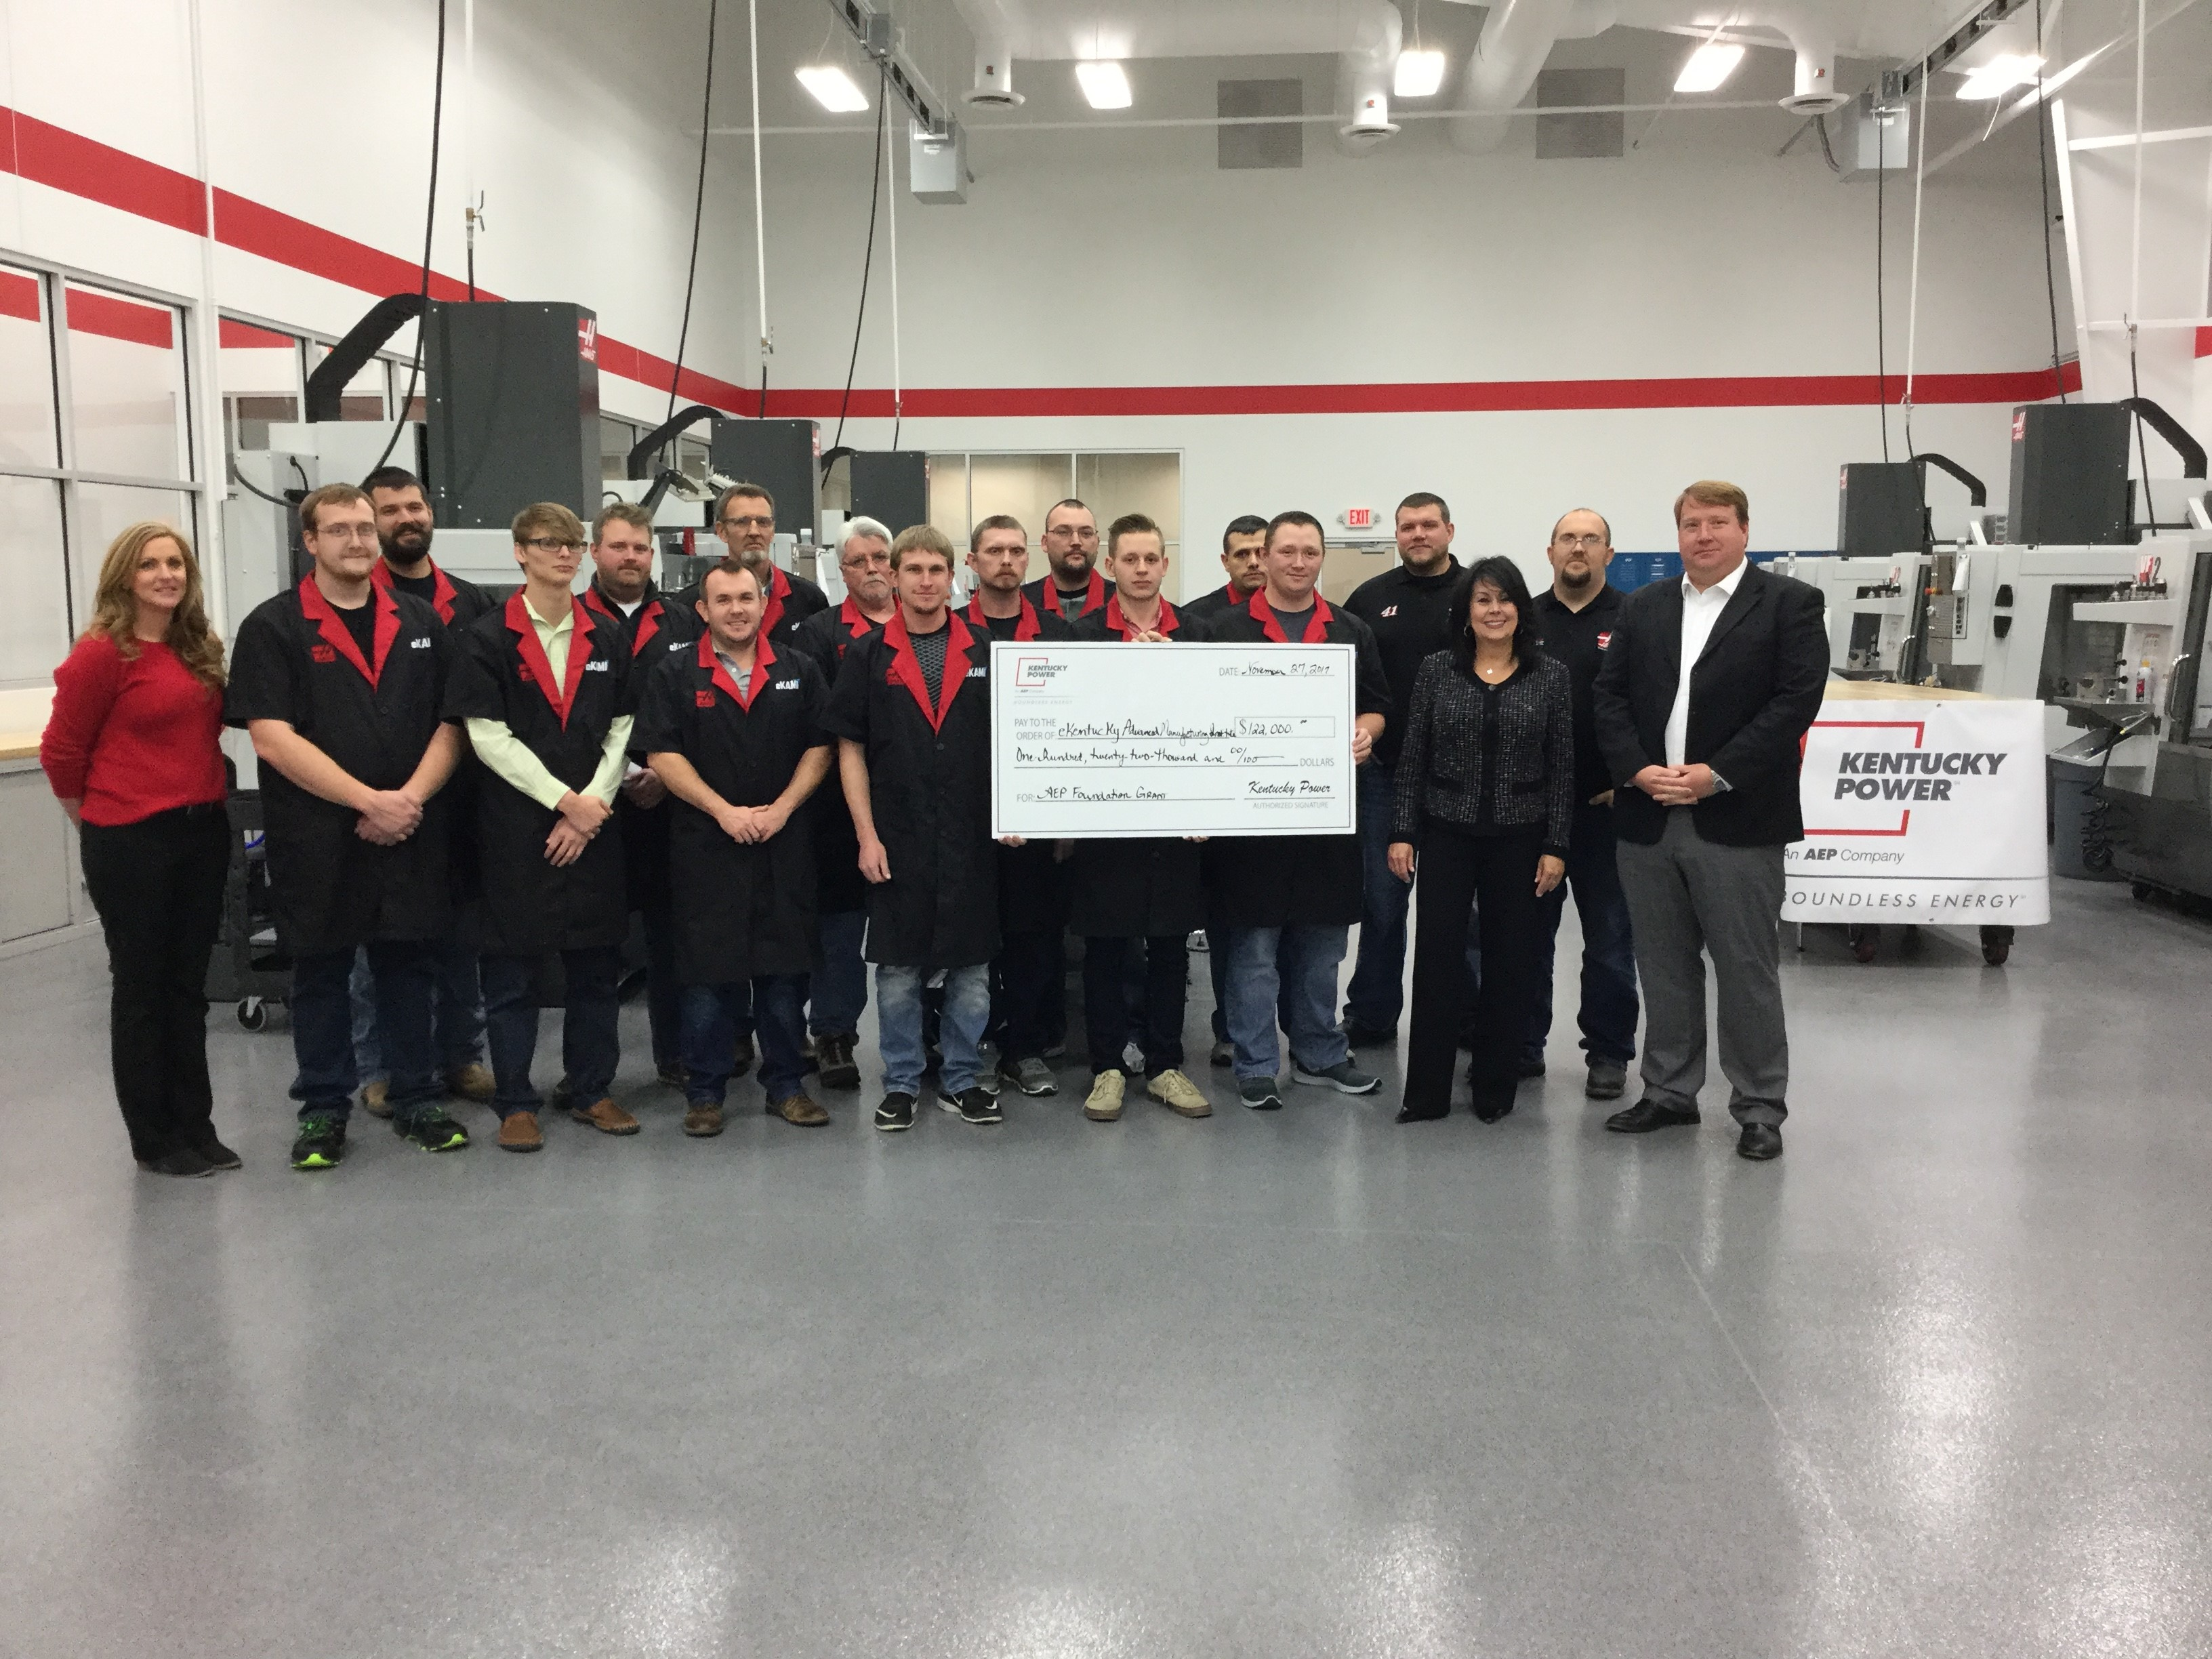 Kentucky Power President Matt Satterwhite, right, presents an AEP Foundation grant of $122,000 to Kathy Walker, second from right, for the eKentucky Advanced Manufacturing Institute. They are joined by students on their first day of classes at the new training facility in Paintsville.